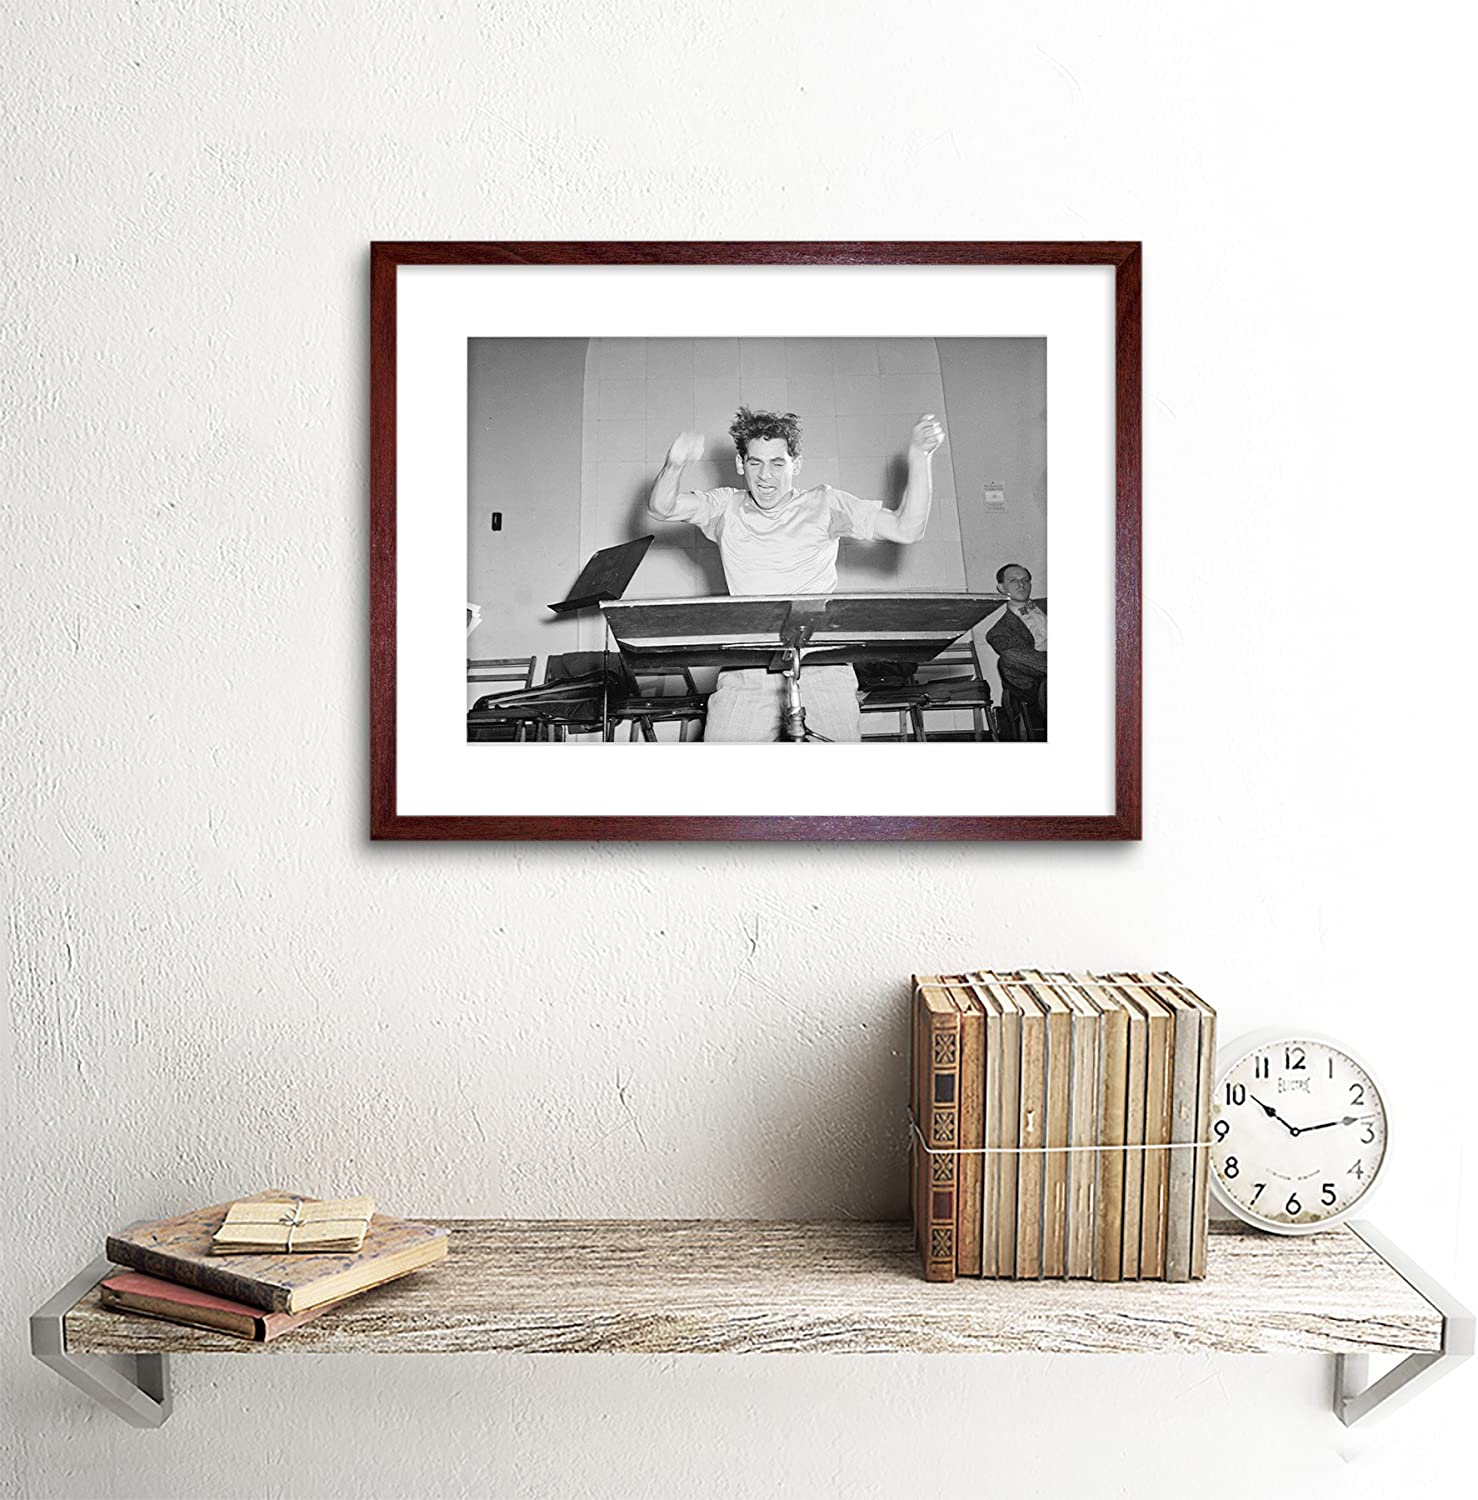 VINTAGE MUSIC LEGEND LEONARD BERNSTEIN CONDUCTING FRAMED ART PRINT B12X3750